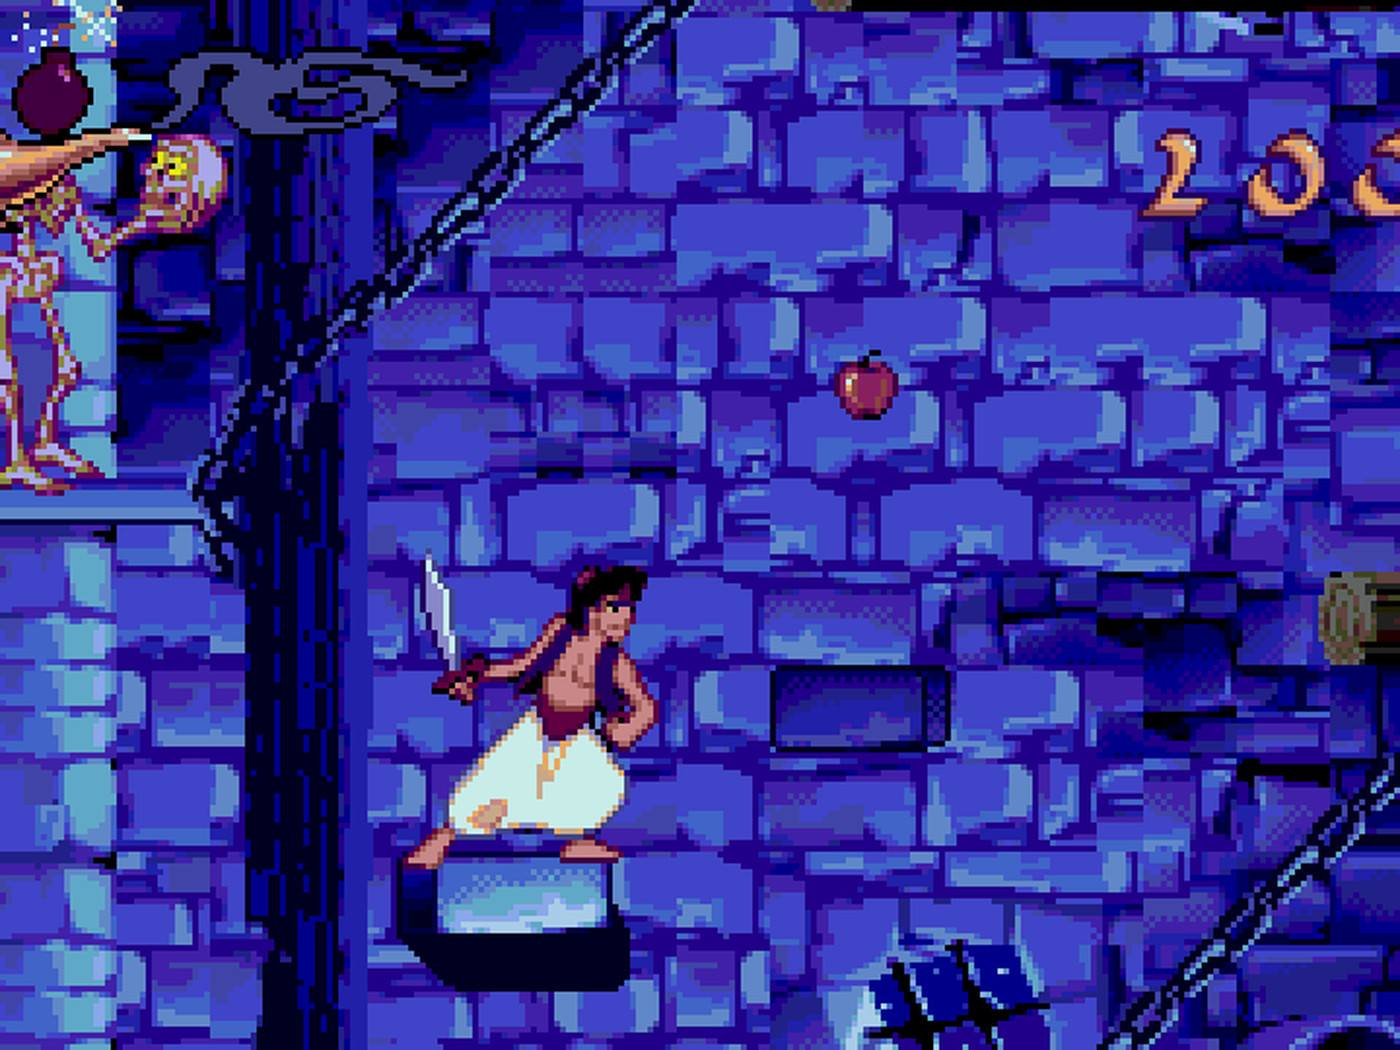 Aladdin, Lion King video games being re-released on console